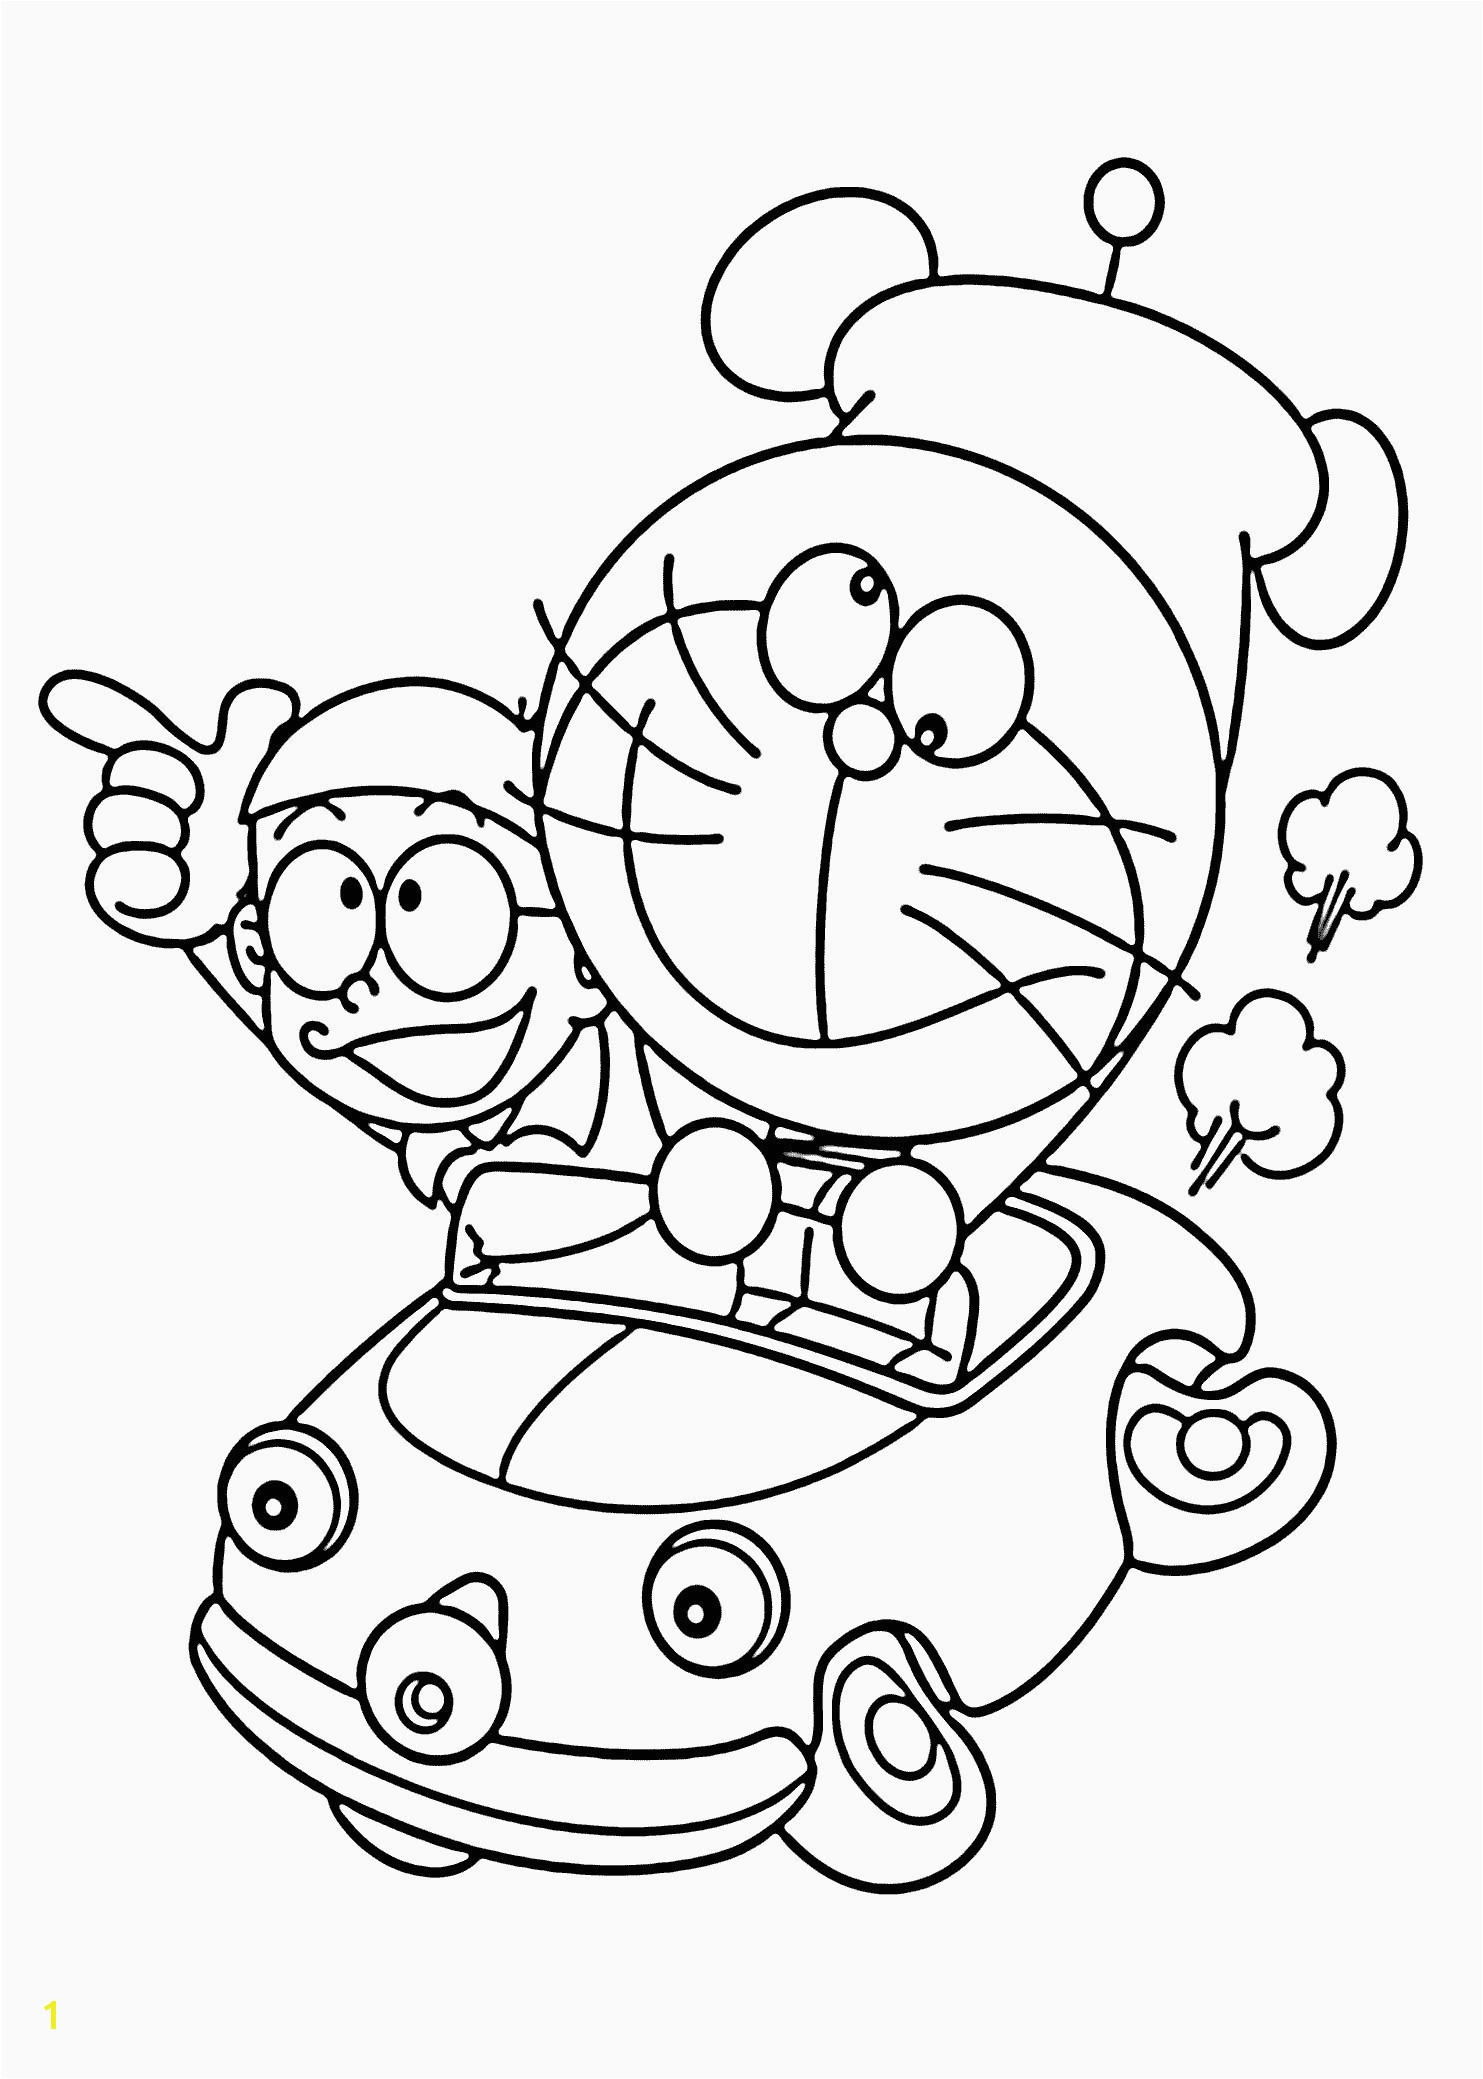 Cyndaquil Coloring Page Mangle Coloring Pages Awesome Home Coloring Pages Best Color Sheet